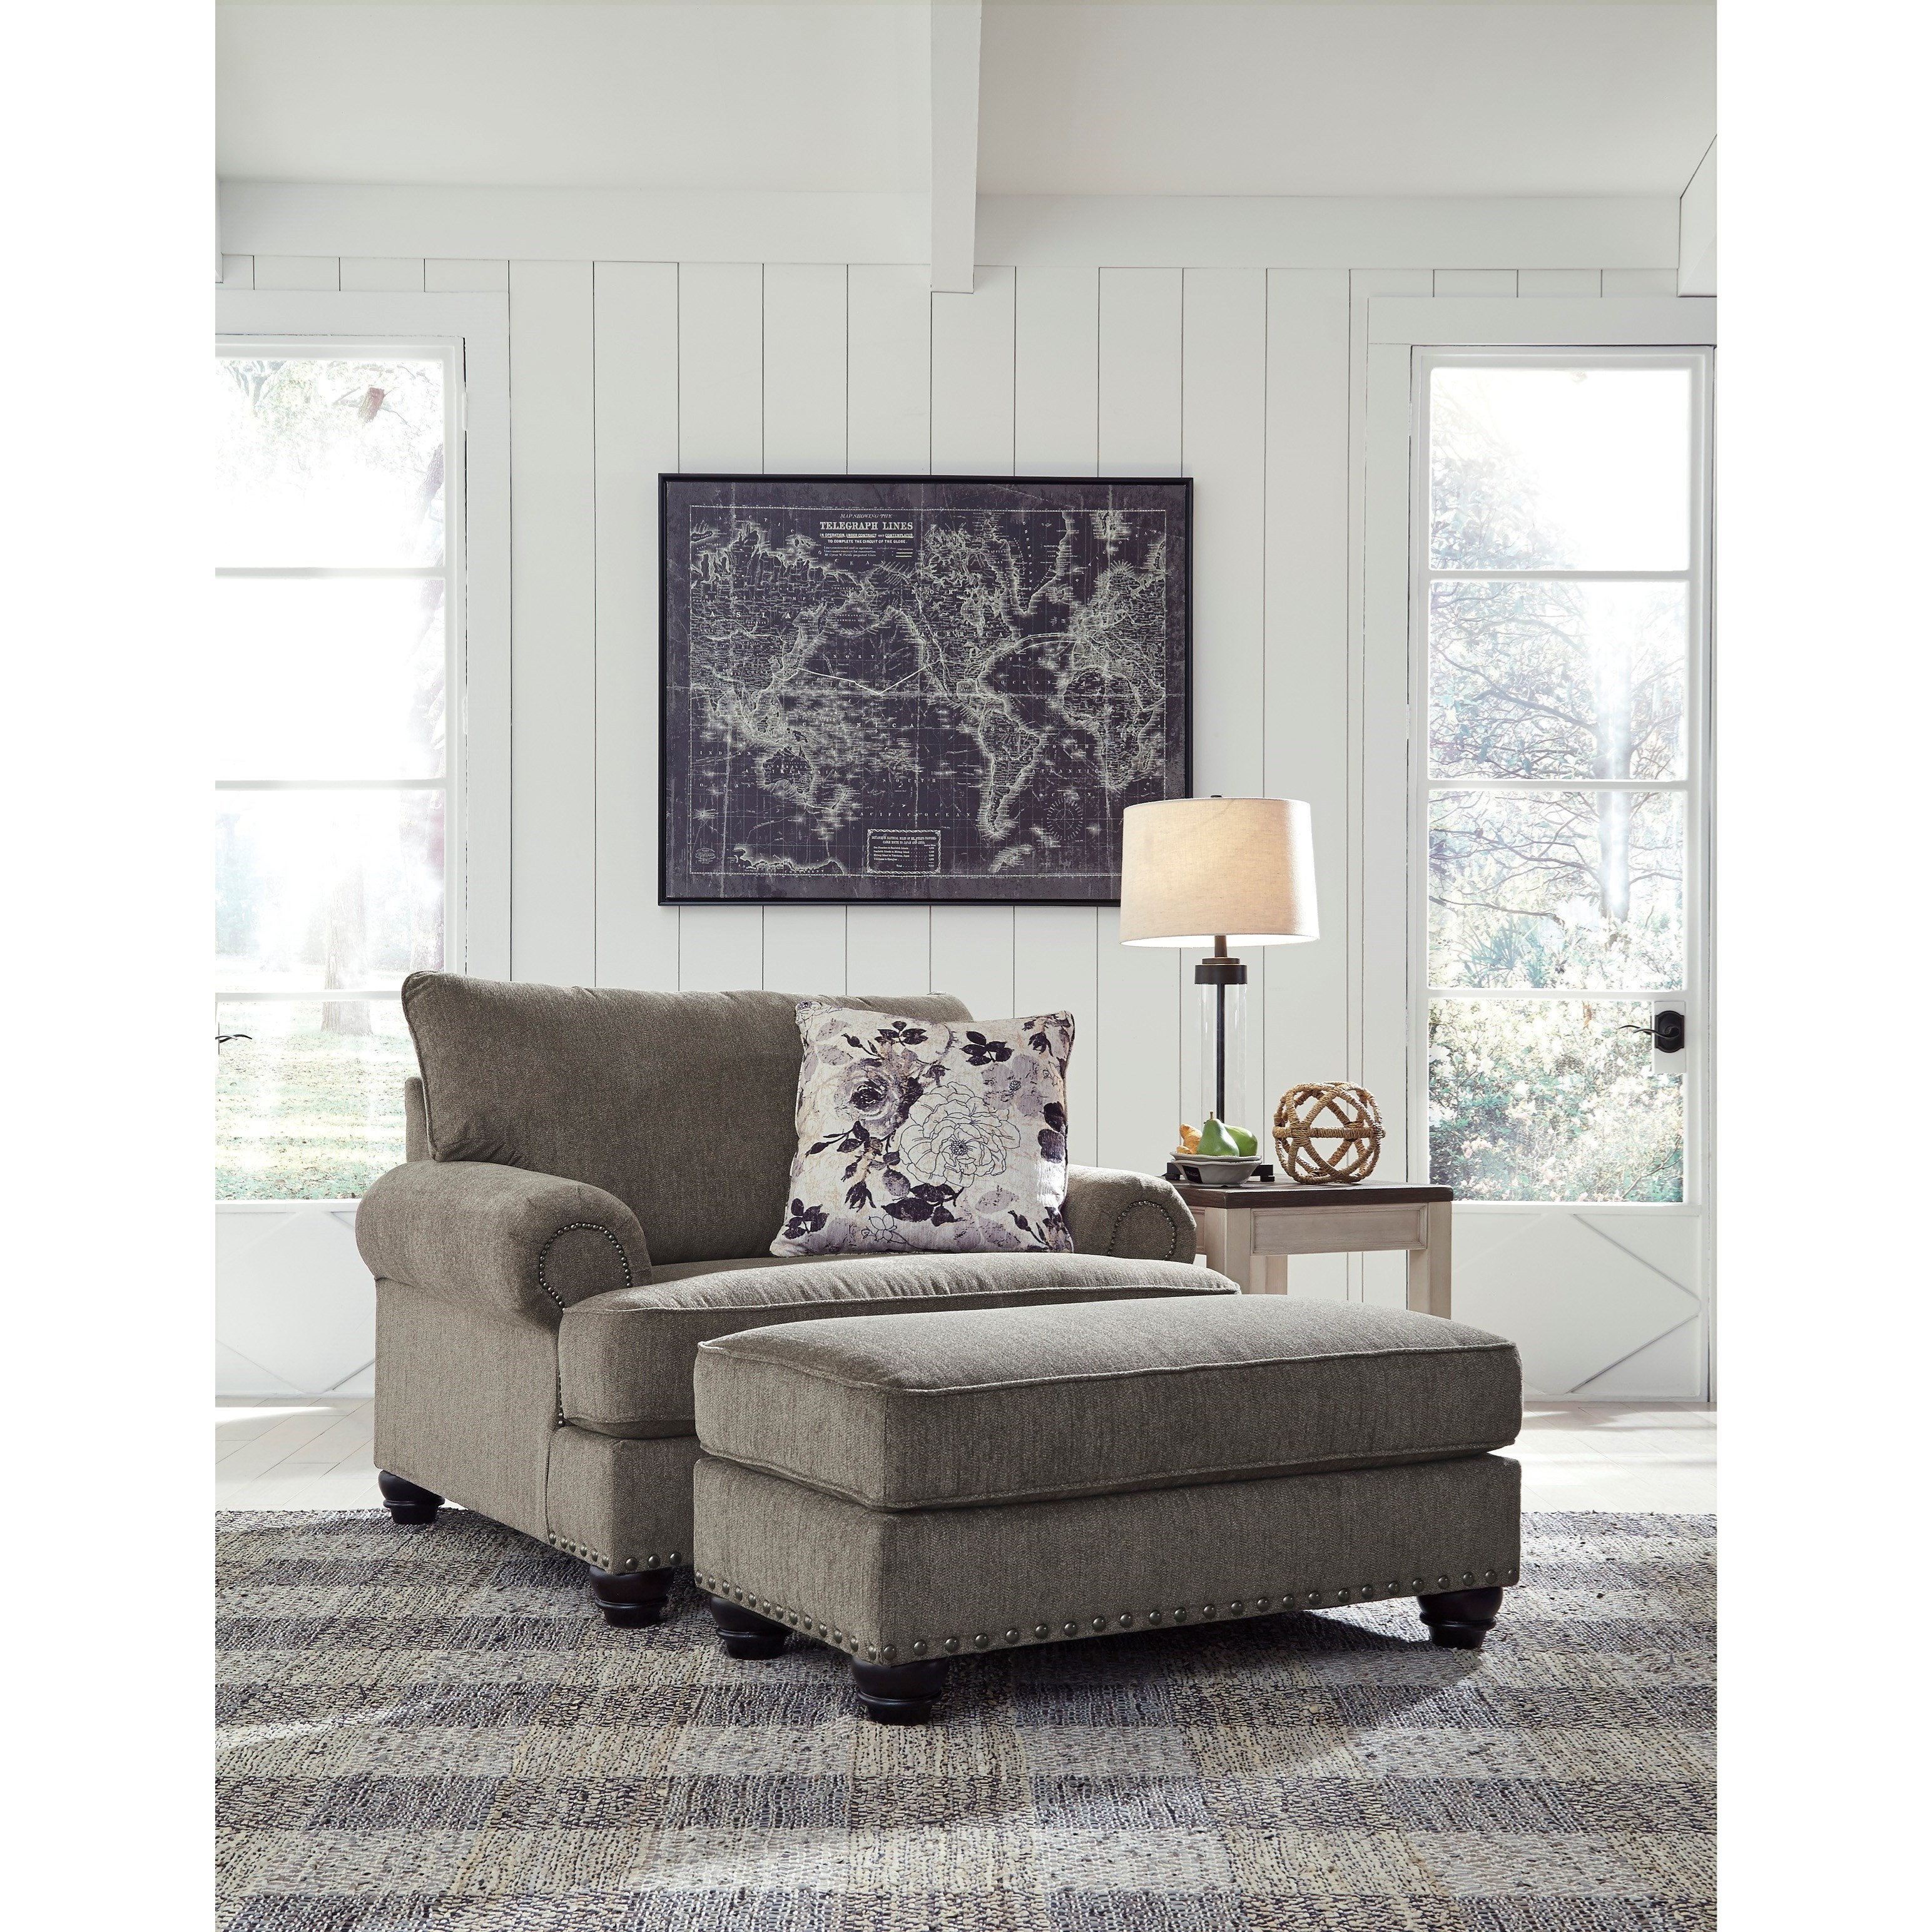 Sembler Chair & a 1/2 and Ottoman Set by Benchcraft at Lindy's Furniture Company